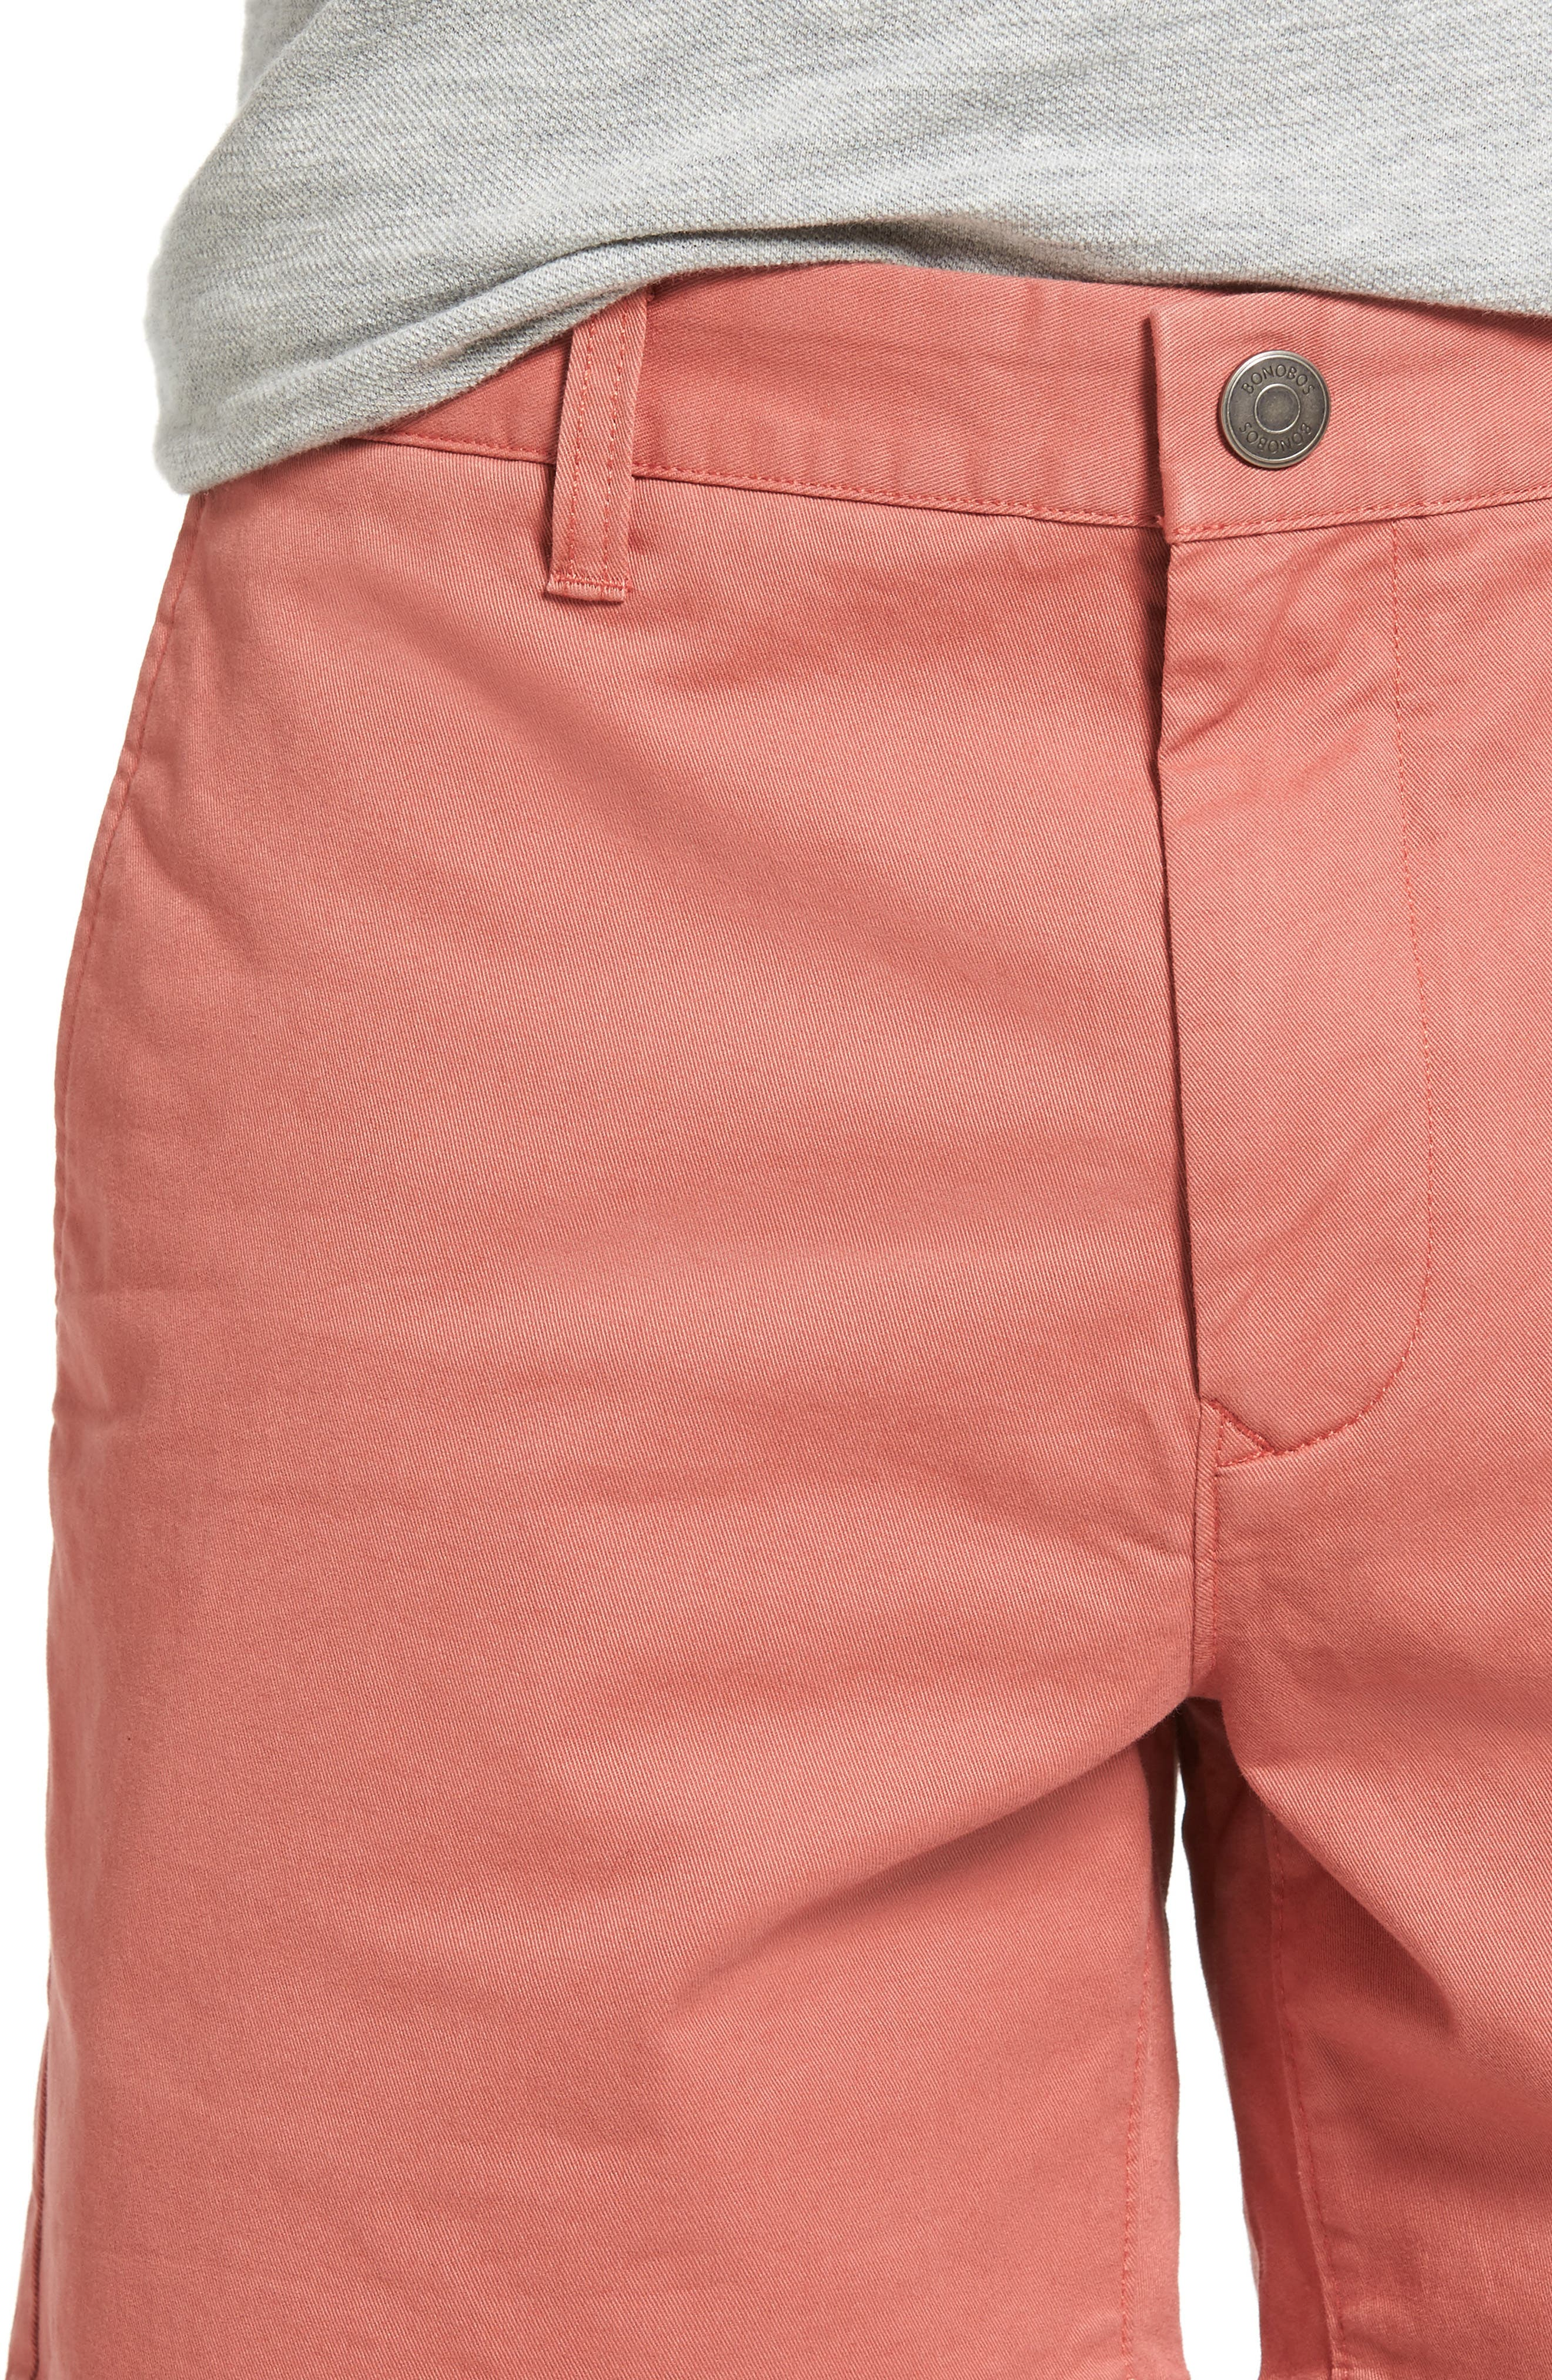 Stretch Washed Chino 5-Inch Shorts,                             Alternate thumbnail 112, color,